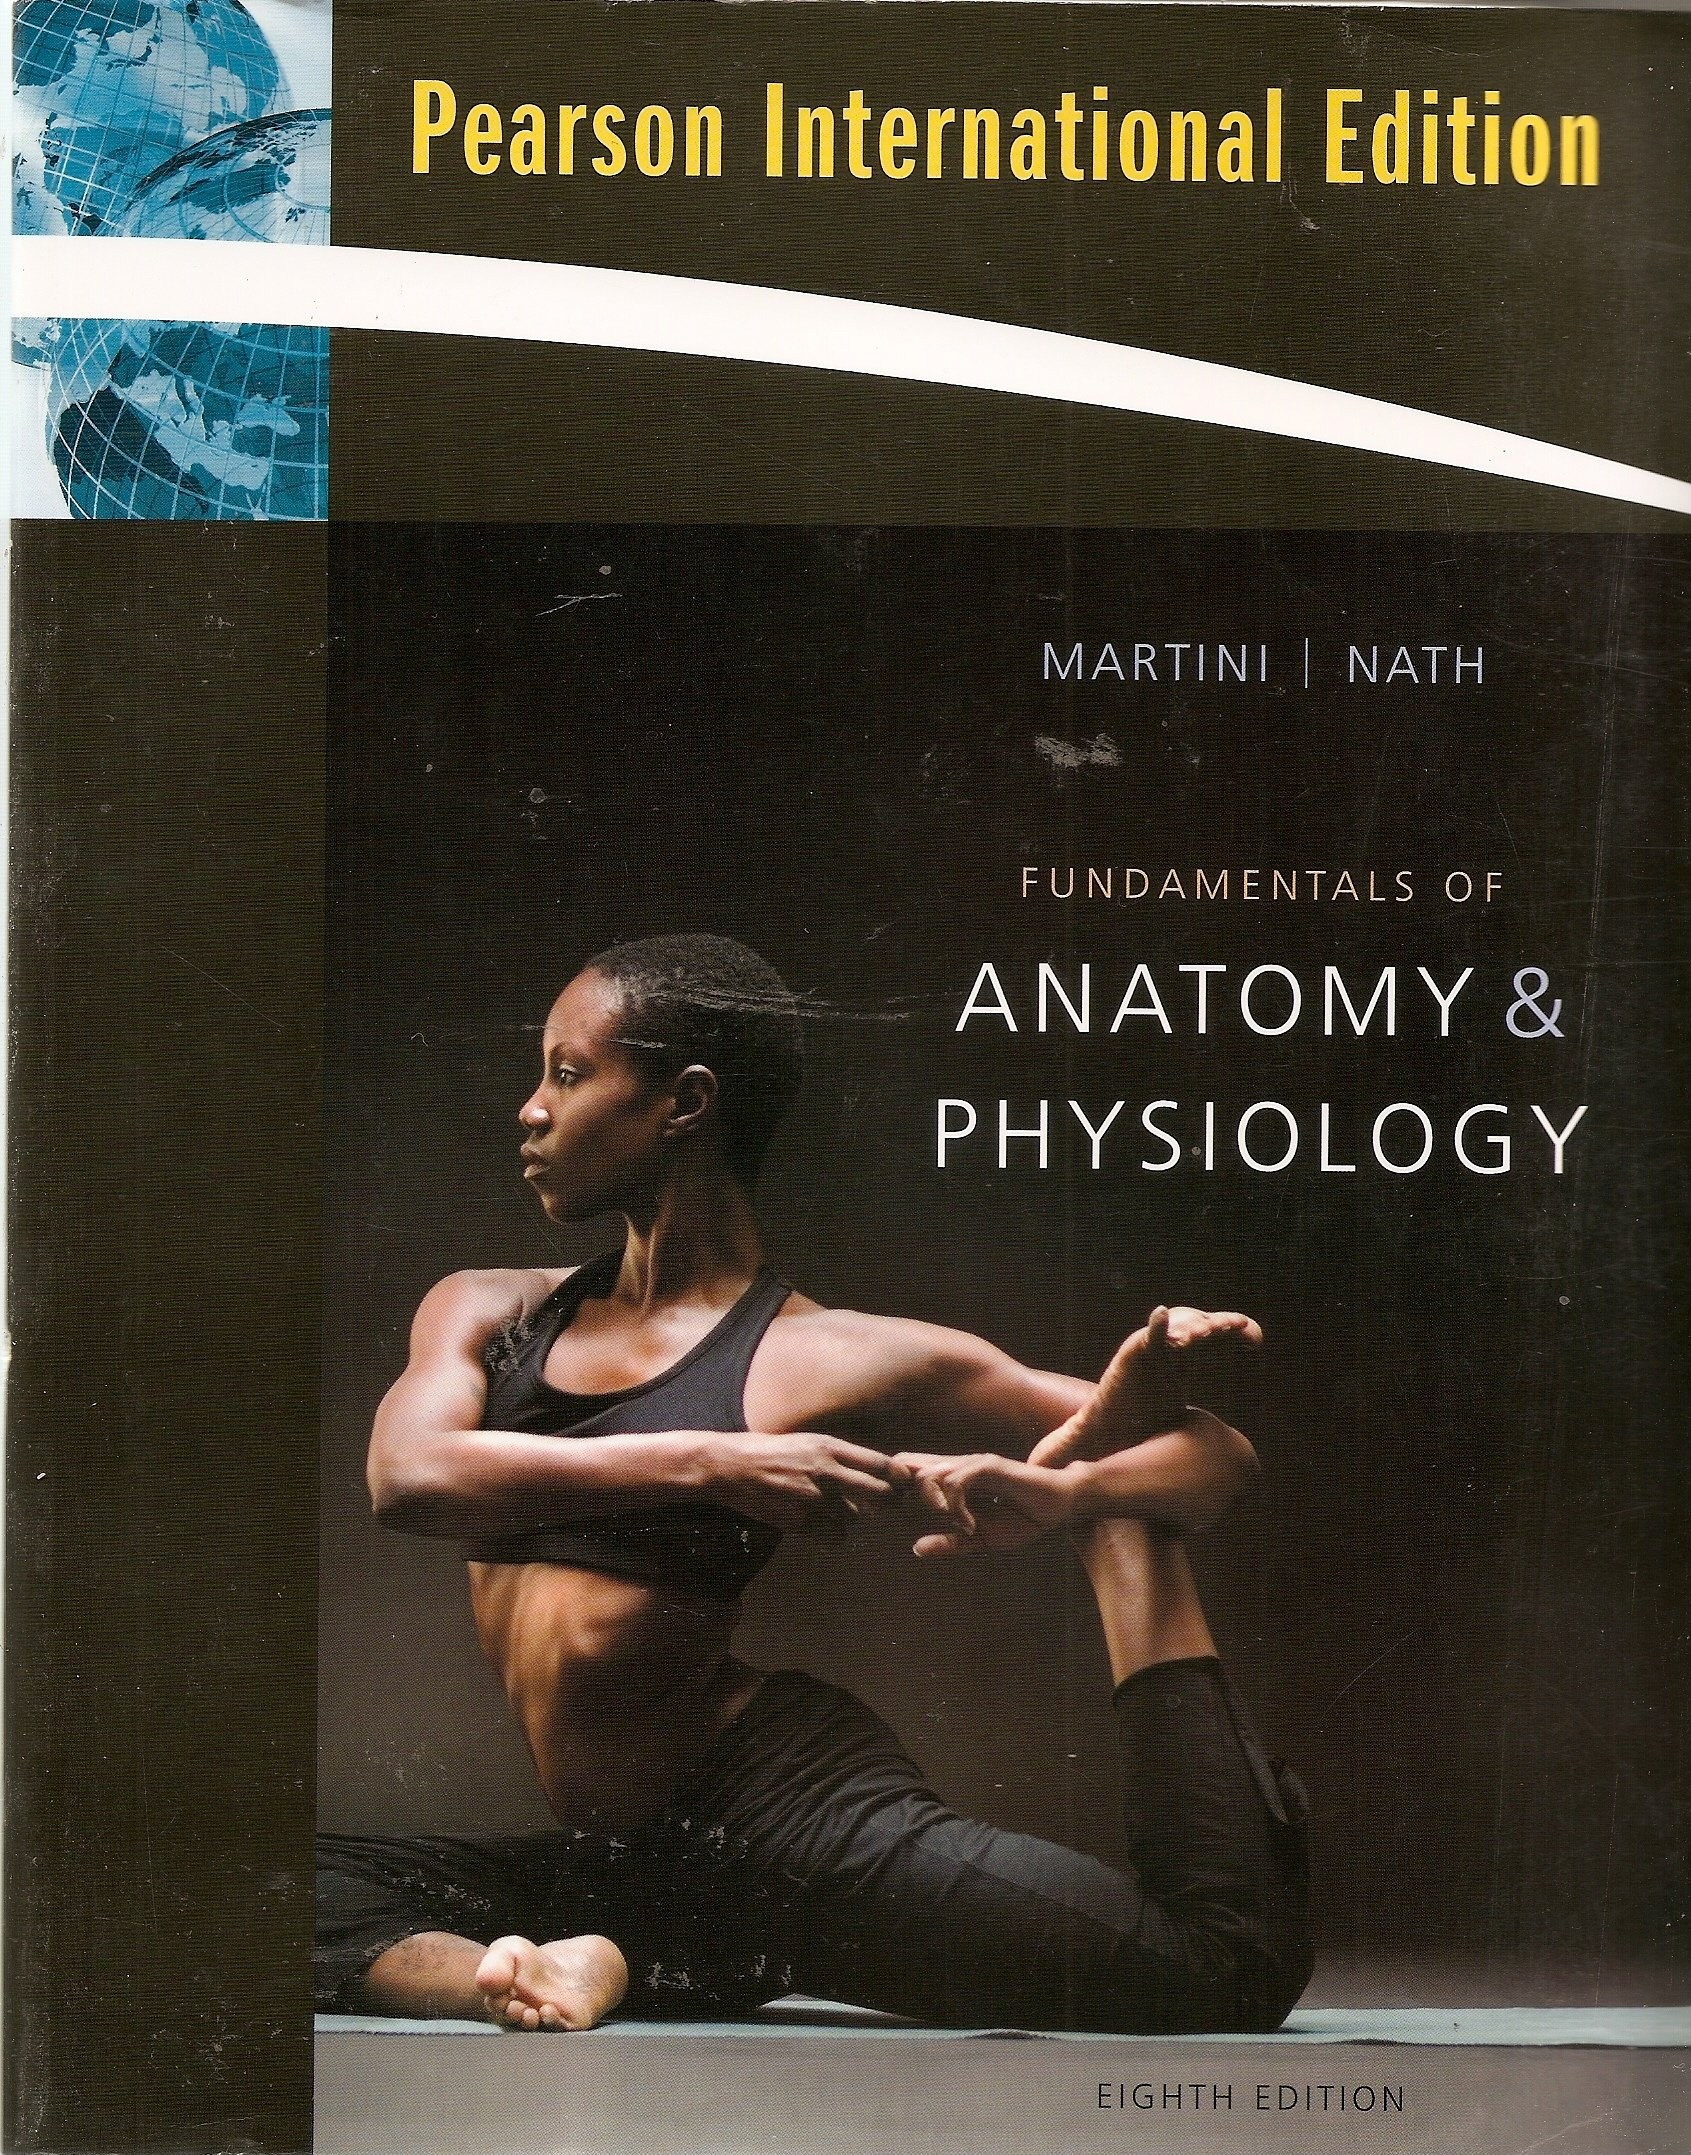 Fundamentals of Anatomy & Physiology Pearson International Edition ...